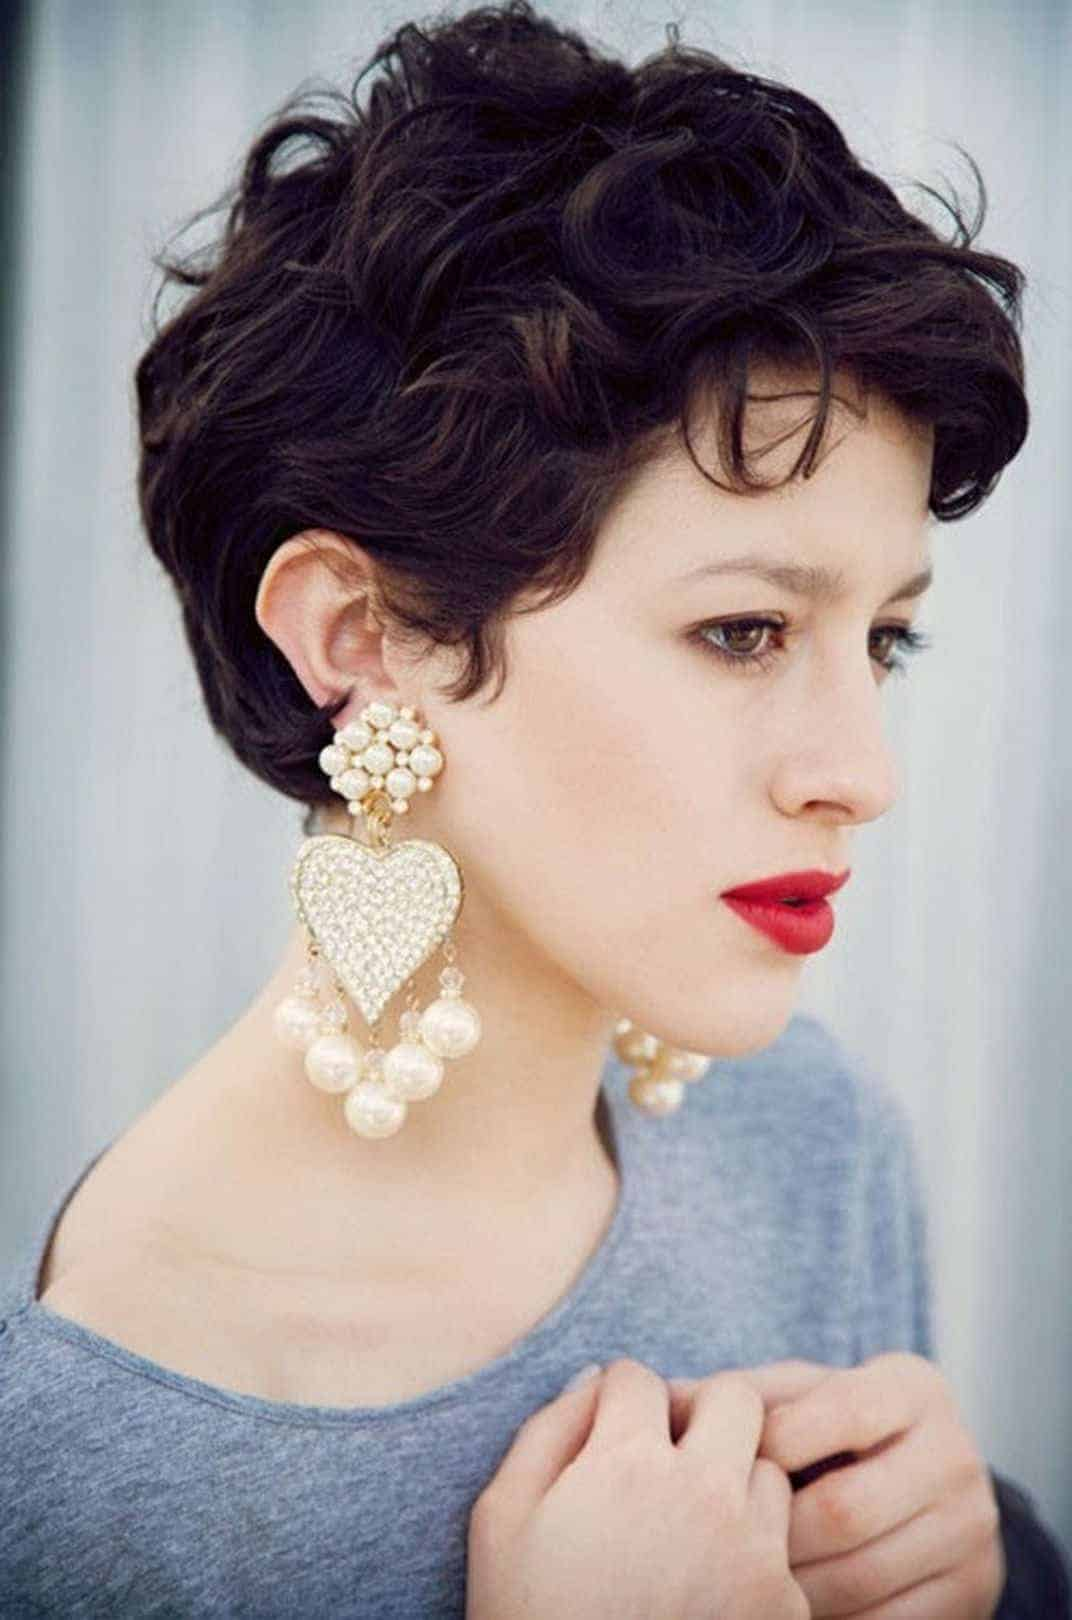 Short Pixie hairstyles for School girls and collage girls